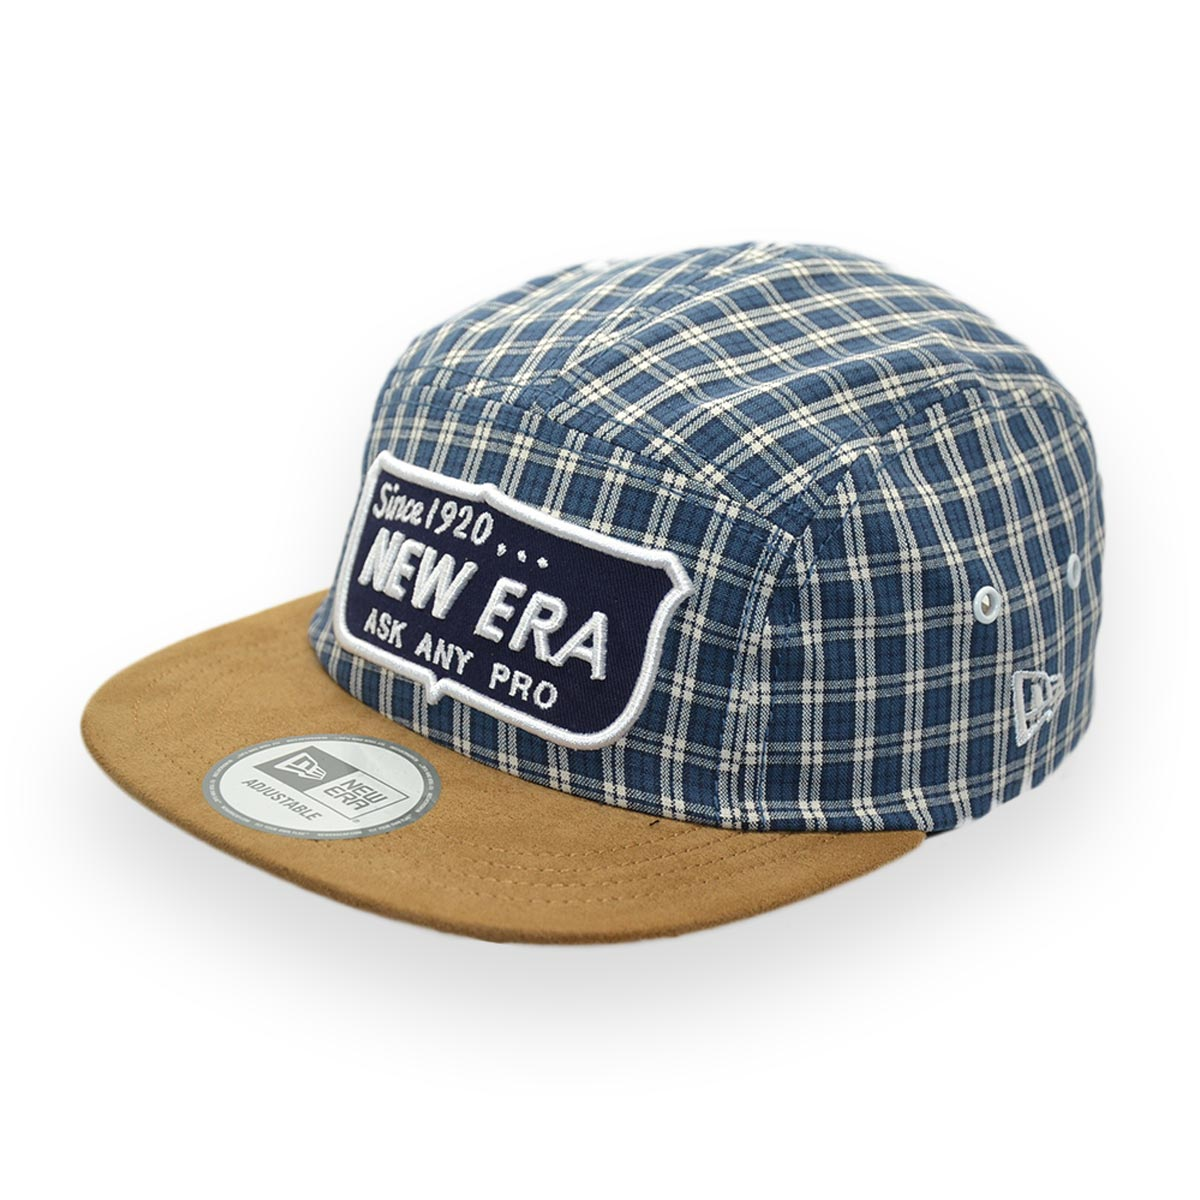 NEW ERA SINCE 1920 ASK ANY PRO TARTAN PLAID BLUE CAP - MyCraze 301d4e6d0d50